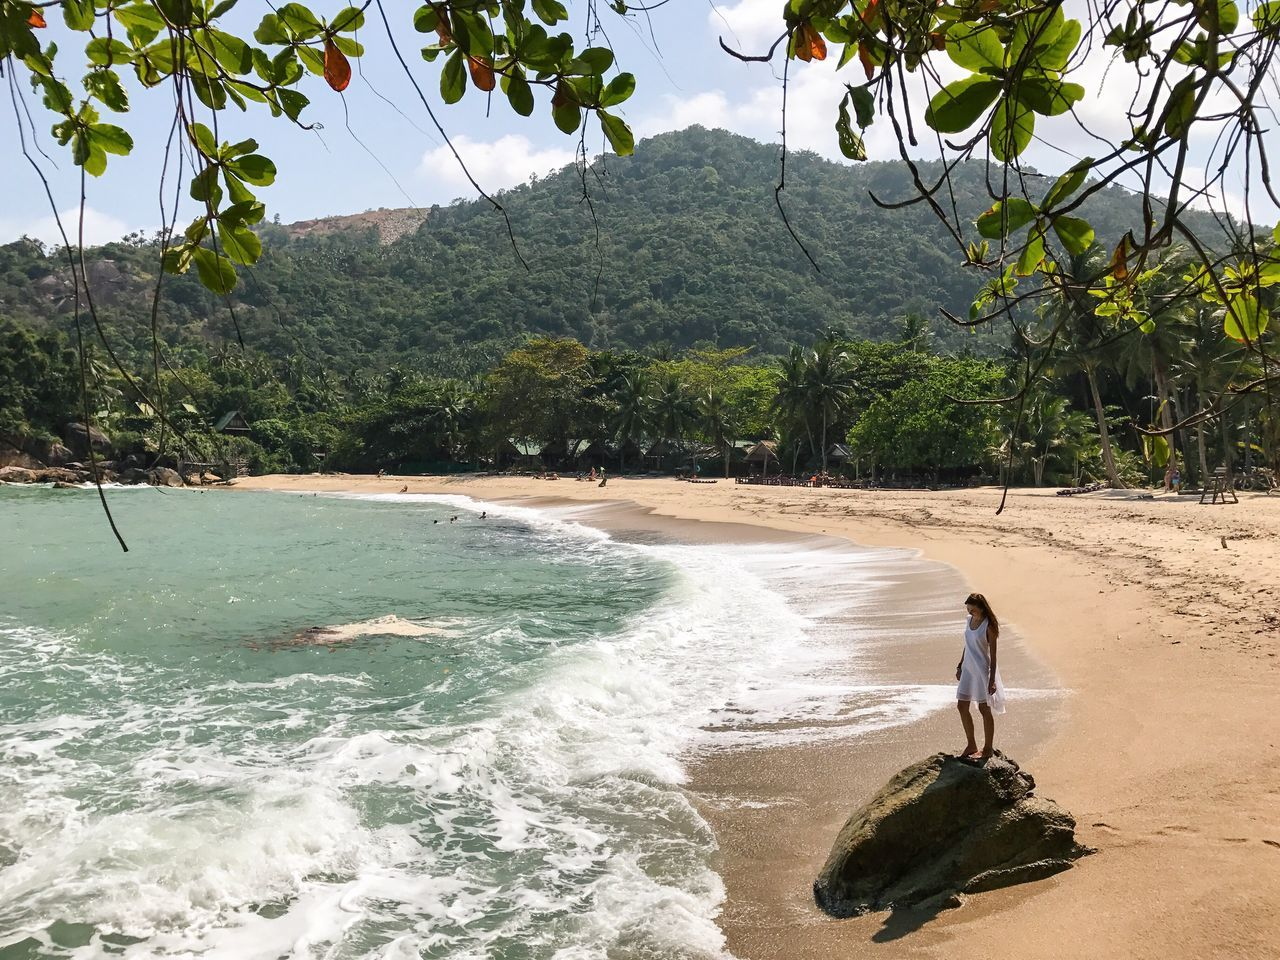 Tree Real People Full Length Beach One Person Nature Beauty In Nature Scenics Walking Sea Sand Outdoors Day Lifestyles Mountain Vacations Water Palm Tree Landscape One Woman Only Rock - Object Wave Thailand Koh Phangan Travel Destinations